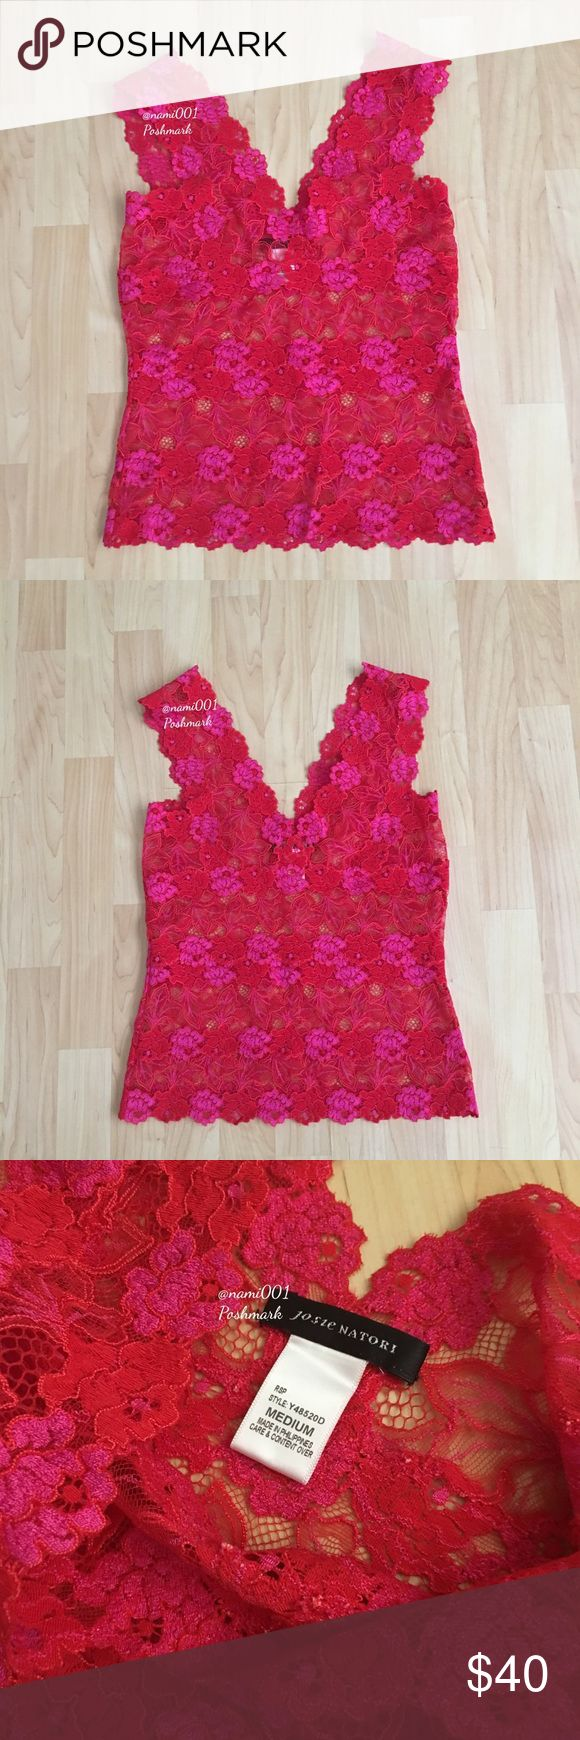 """Josie Natori Bralette Bardot Top EUC This adorable bralette from Josie Natori is perfect to wear with an open shirt tucked into some skinny distressed jeans or under a sheer blouse. Only wore once for a couple of hours but it's too big for me so this is in excellent condition. Pretty pink and red lace dragon with floral appliqué. Measures: 15"""" underarm to underarm, 7"""" straps, 15"""" underarm to hem. This is cropped right above the belly button. Super sexy and cute. Josie Natori Tops"""